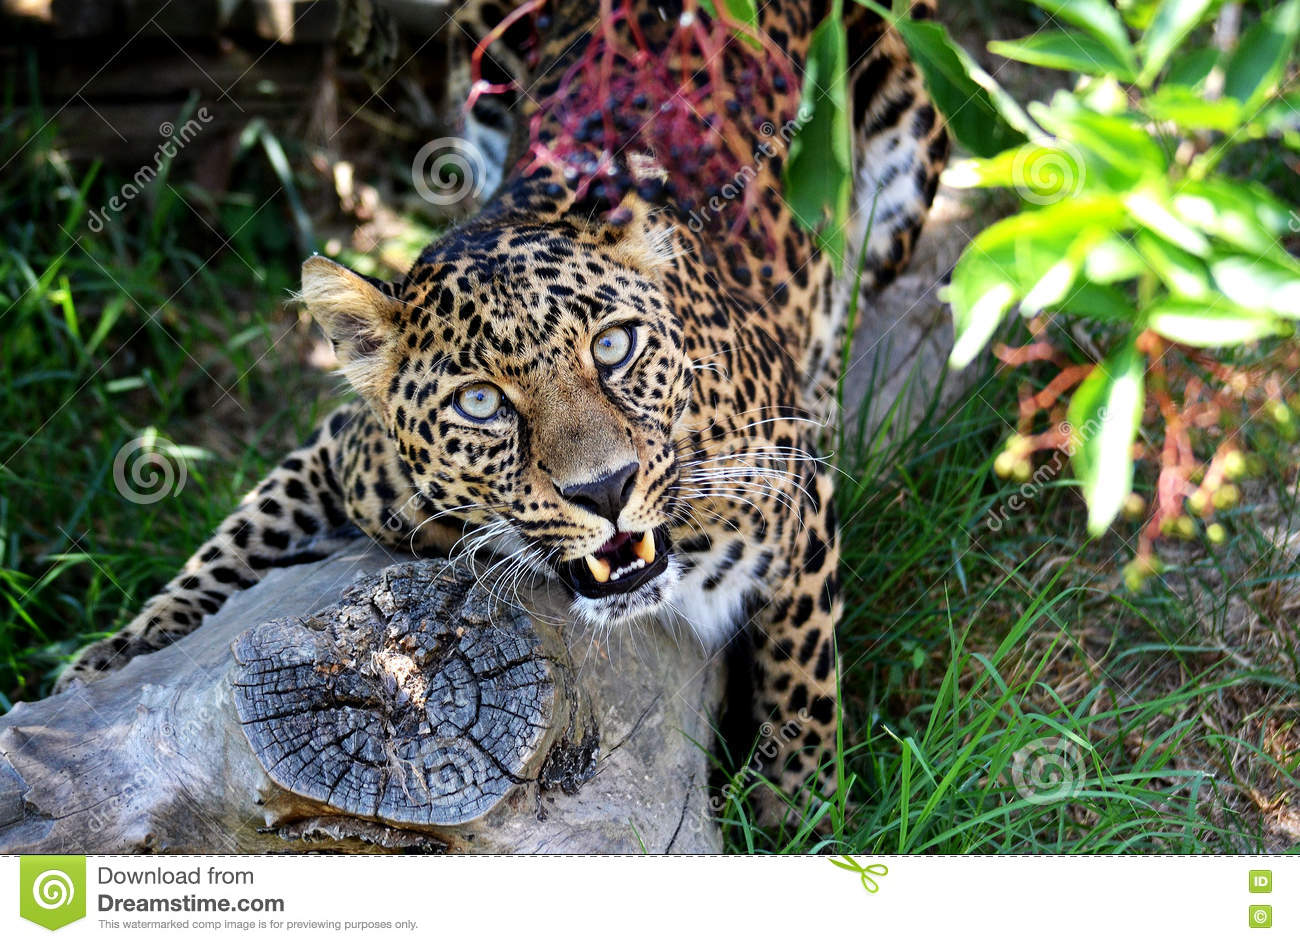 Stuning leopard glazing at you